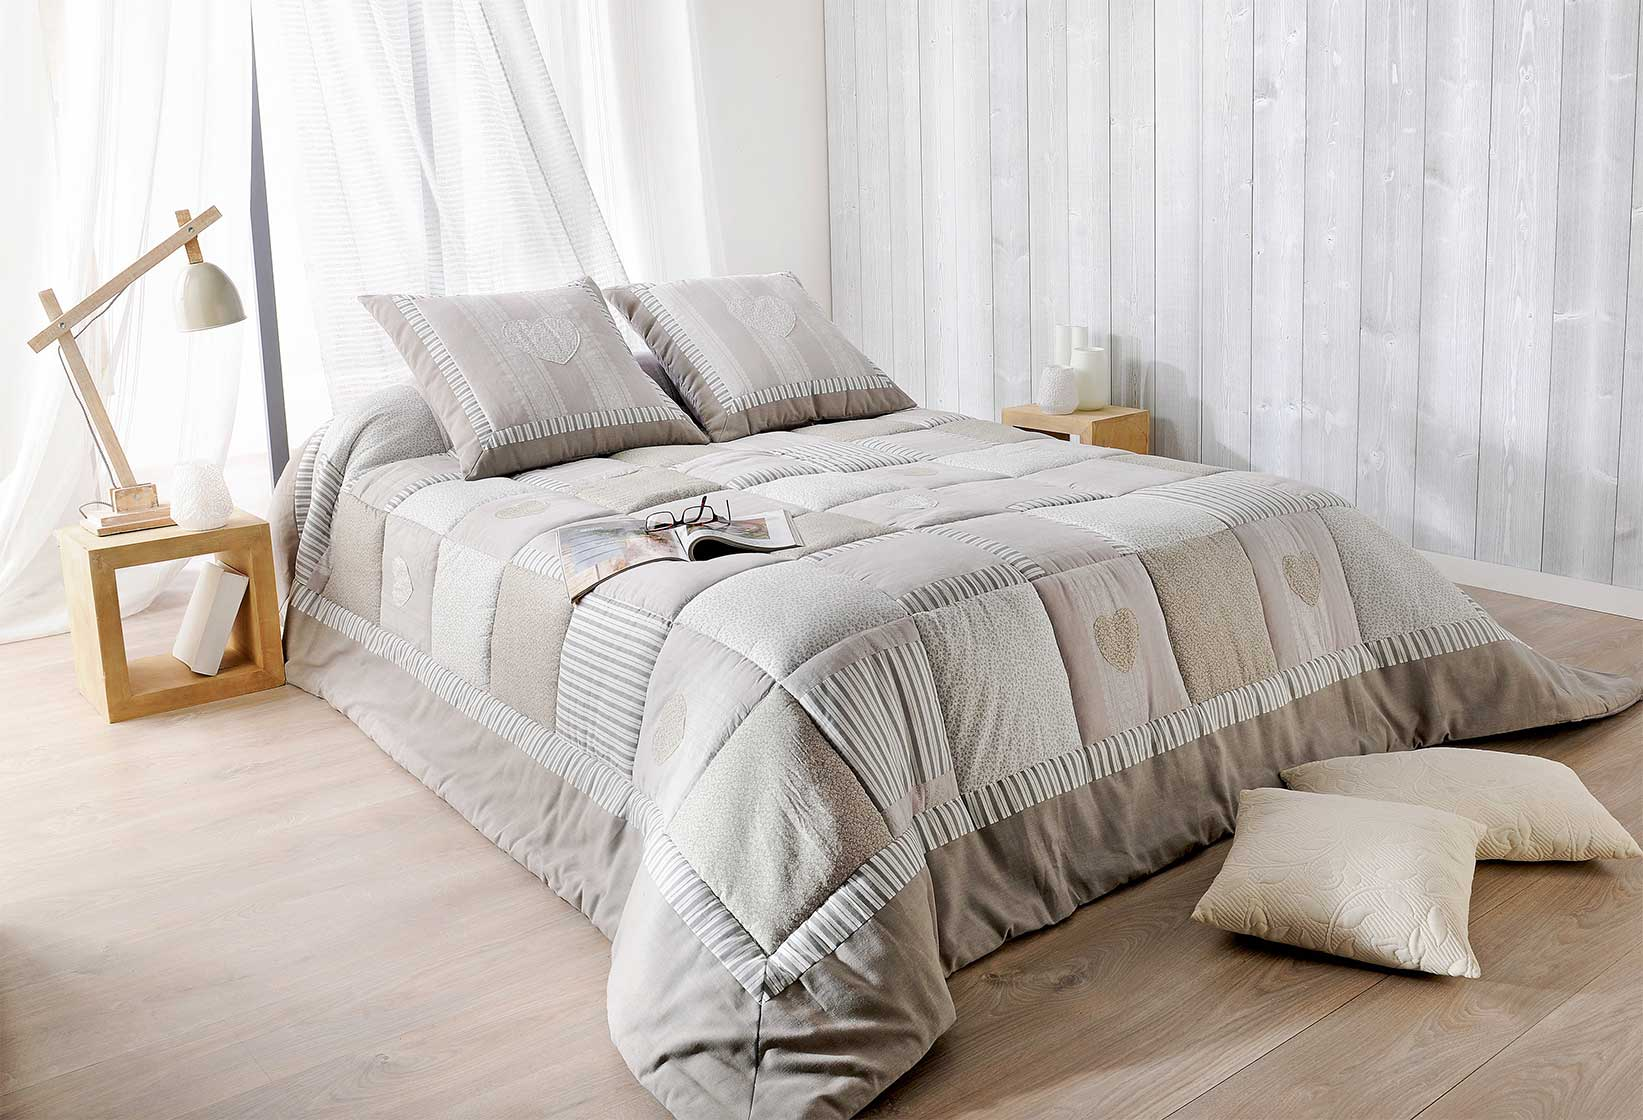 jet de lit ouatin gris et beige avec taie d oreiller gris et beige homemaison vente en. Black Bedroom Furniture Sets. Home Design Ideas